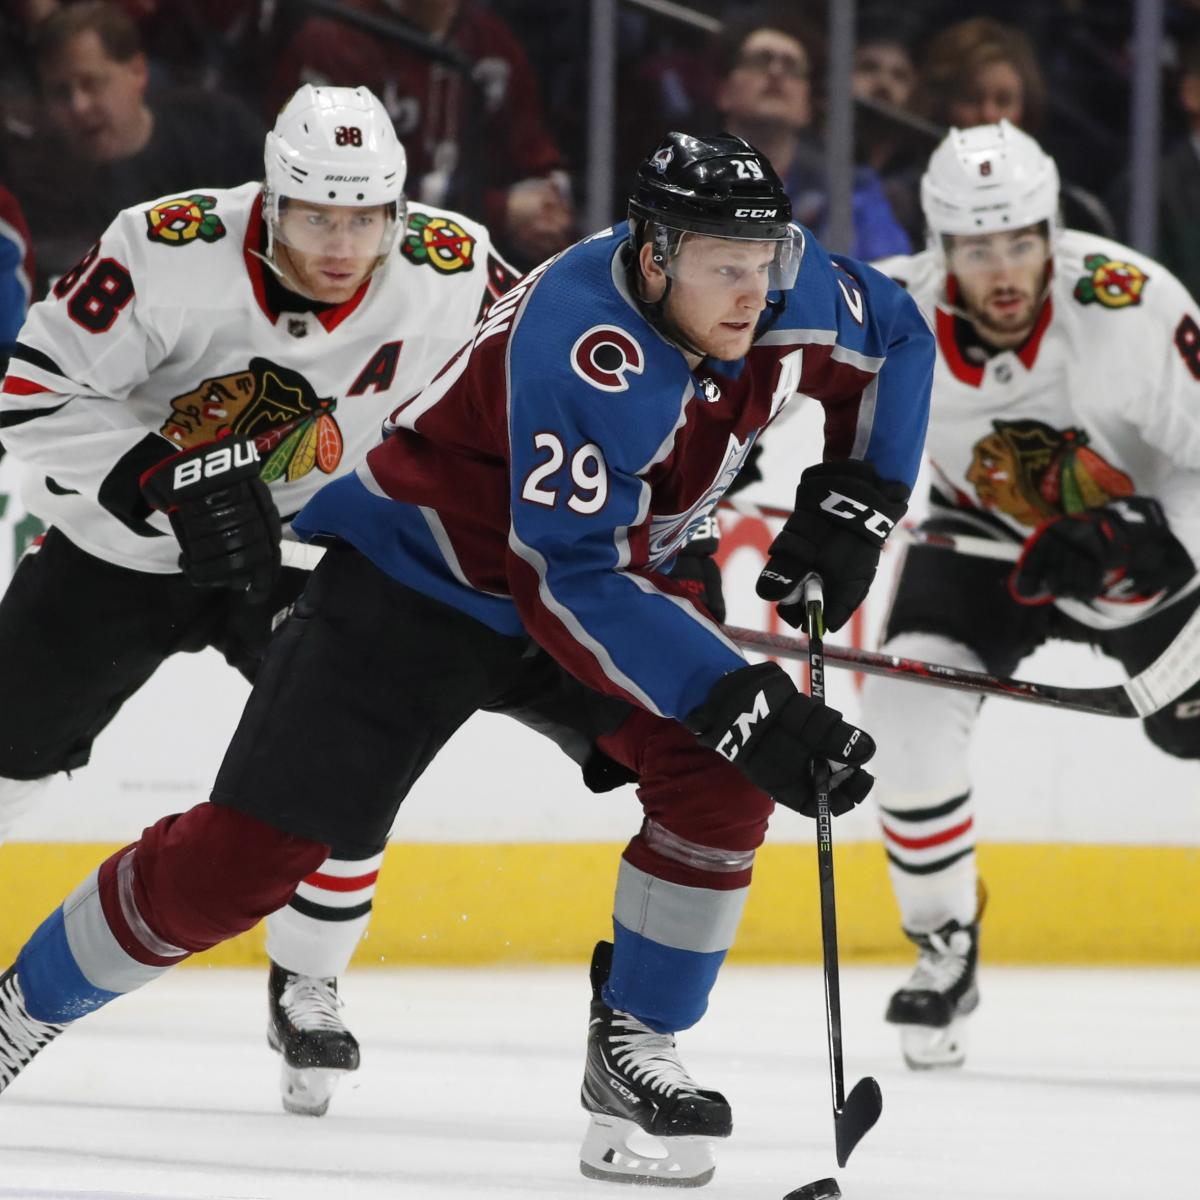 NHL Playoff Picture 2018: Bracket Standings, Wild Card